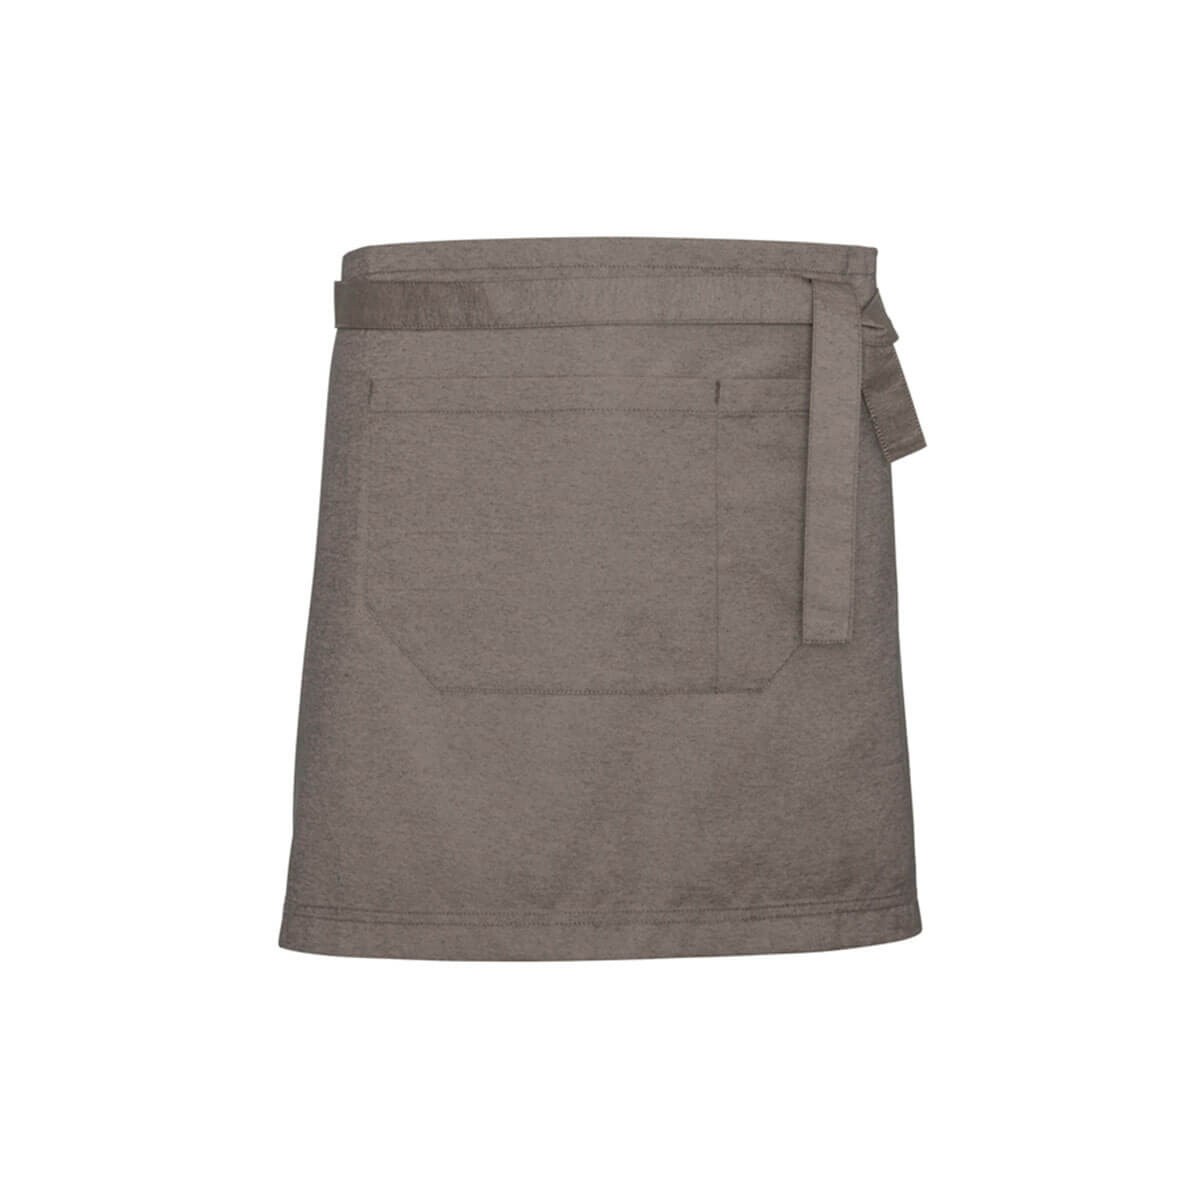 Urban 1/2 Waist Apron-Natural